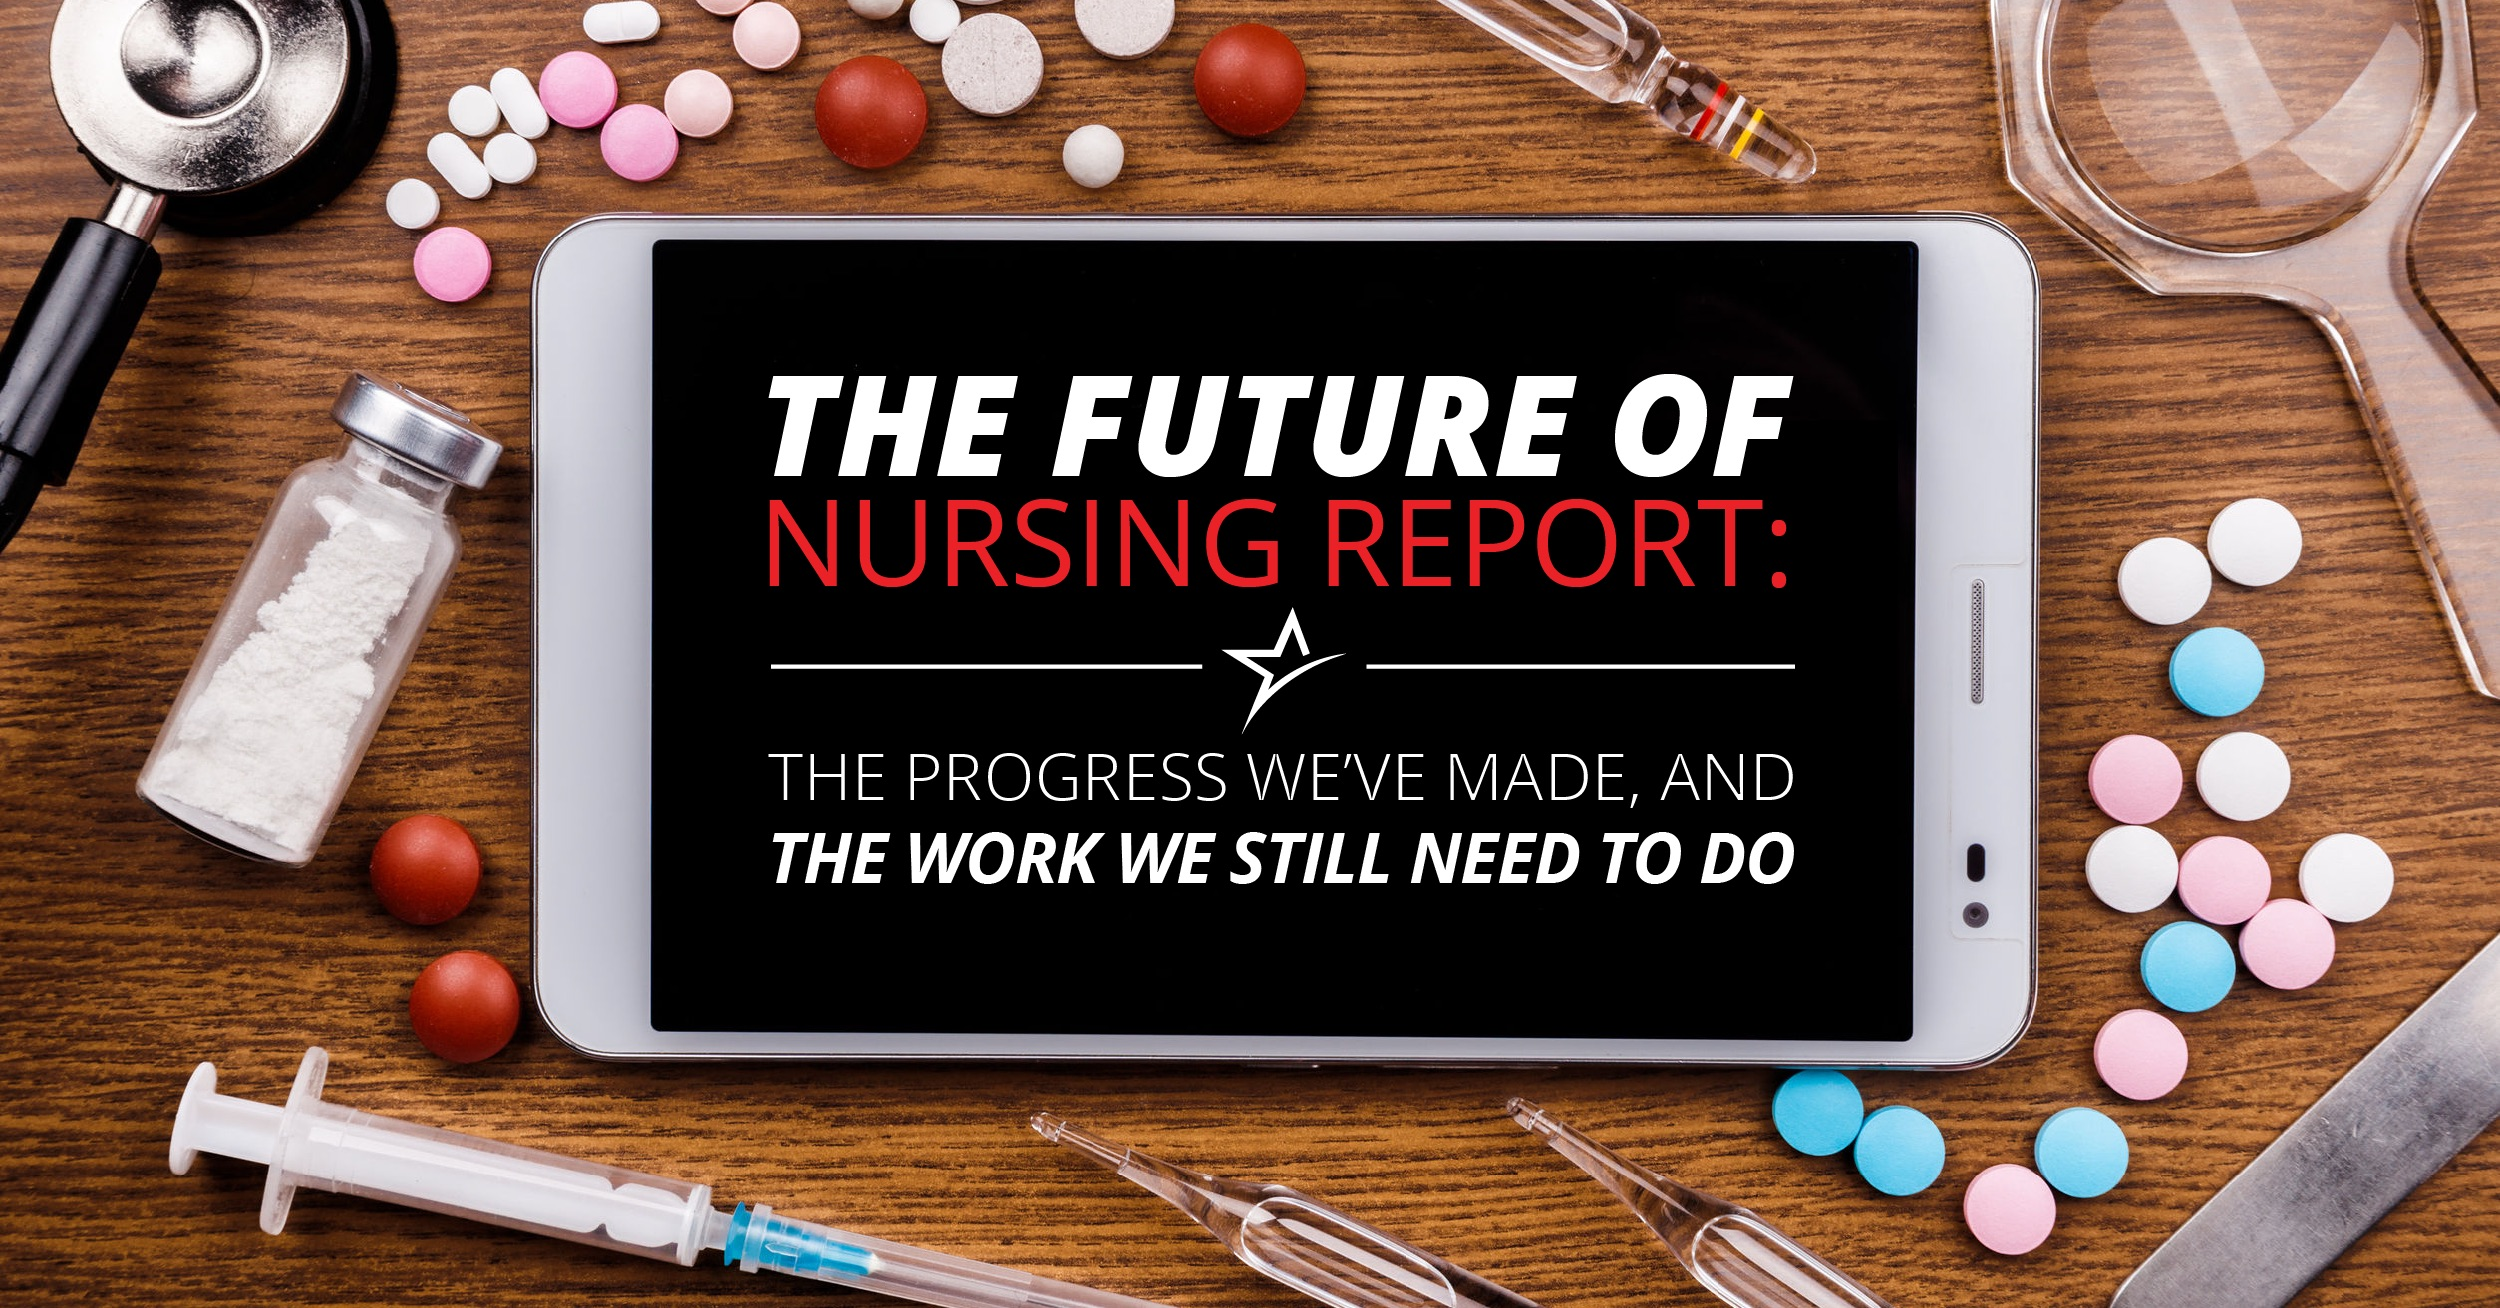 the 2010 iom report the future of nursing essay Iom report future nursing institute of medicine (iom) in partnership with robert wood johnson foundation (rwjf) conducted 2 years of research (2008-2010) to assess and transform the nursing profession in an effort to improve the overall healthcare in united states.